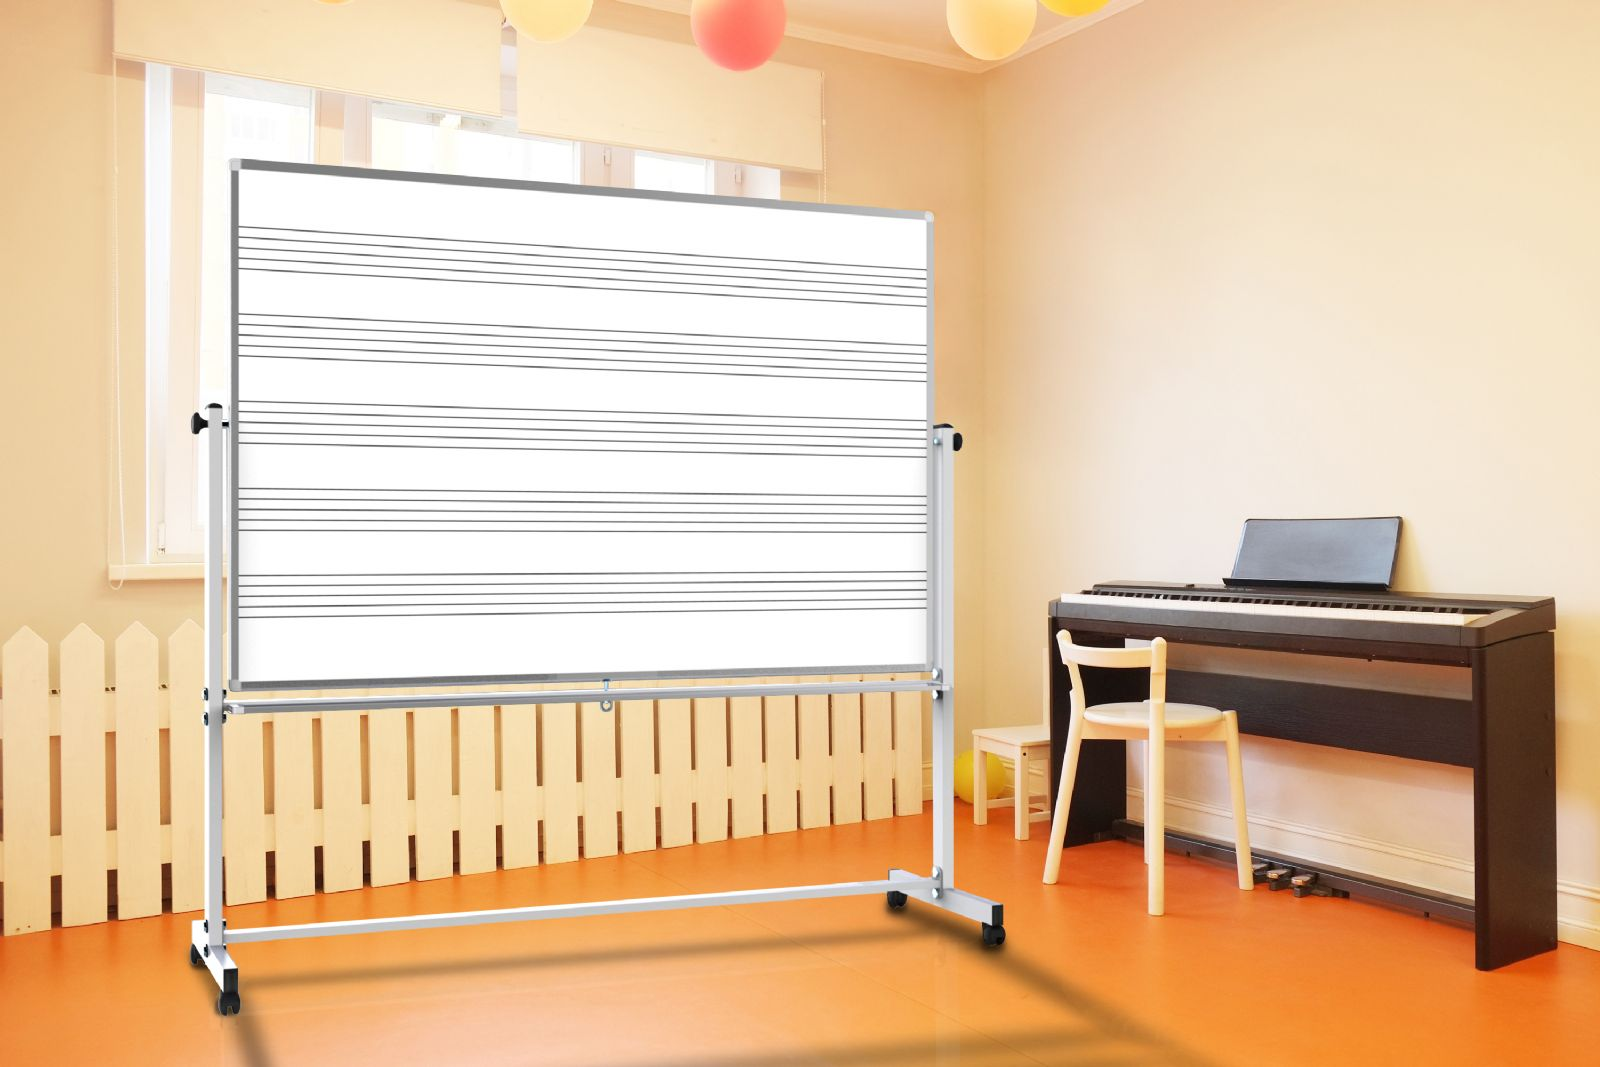 How To Turn A Wall Into A Whiteboard Magnetic Music Whiteboards With Music Staff Lines